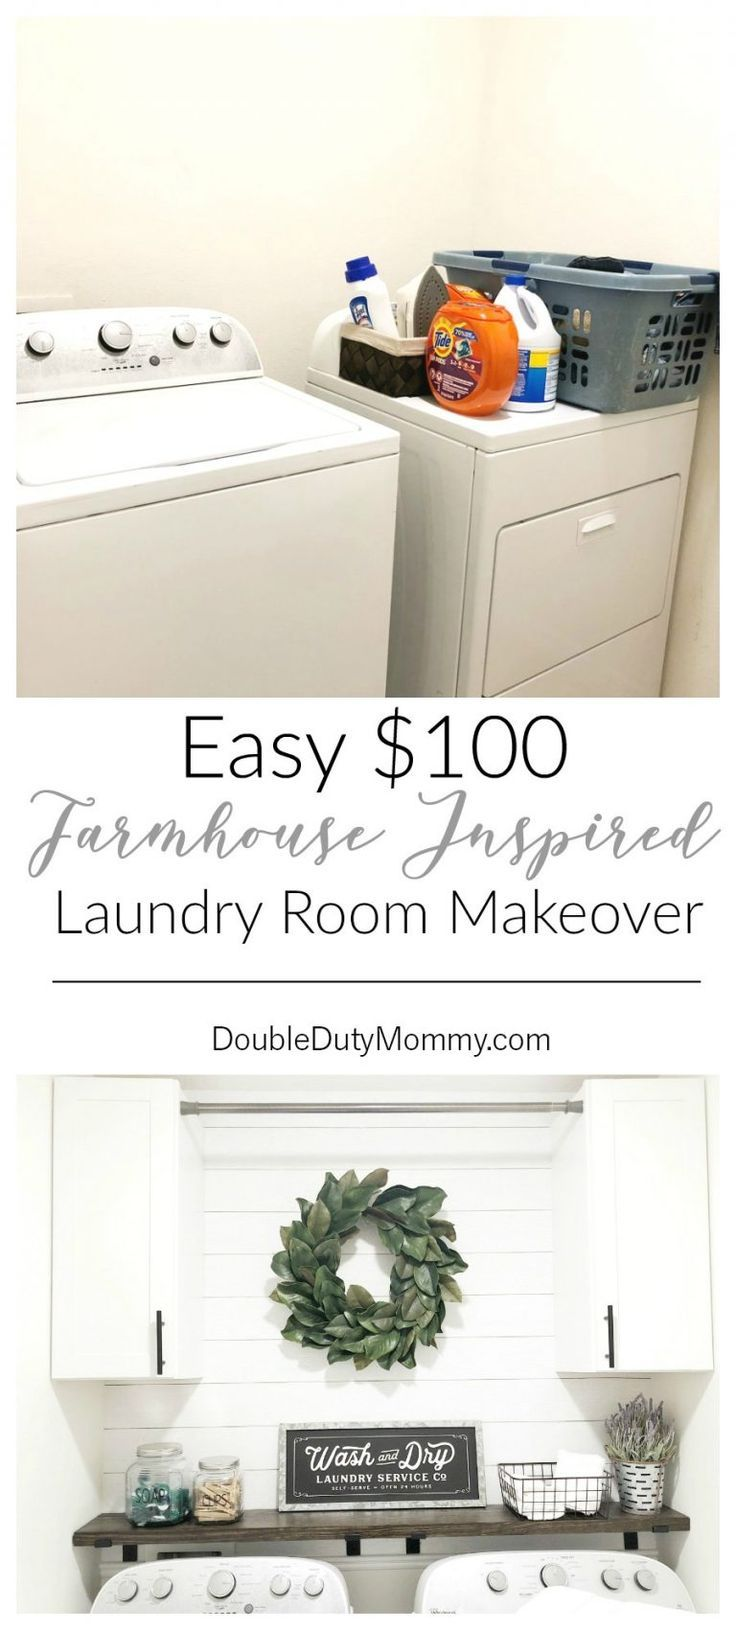 Easy Laundry Room Makeover images